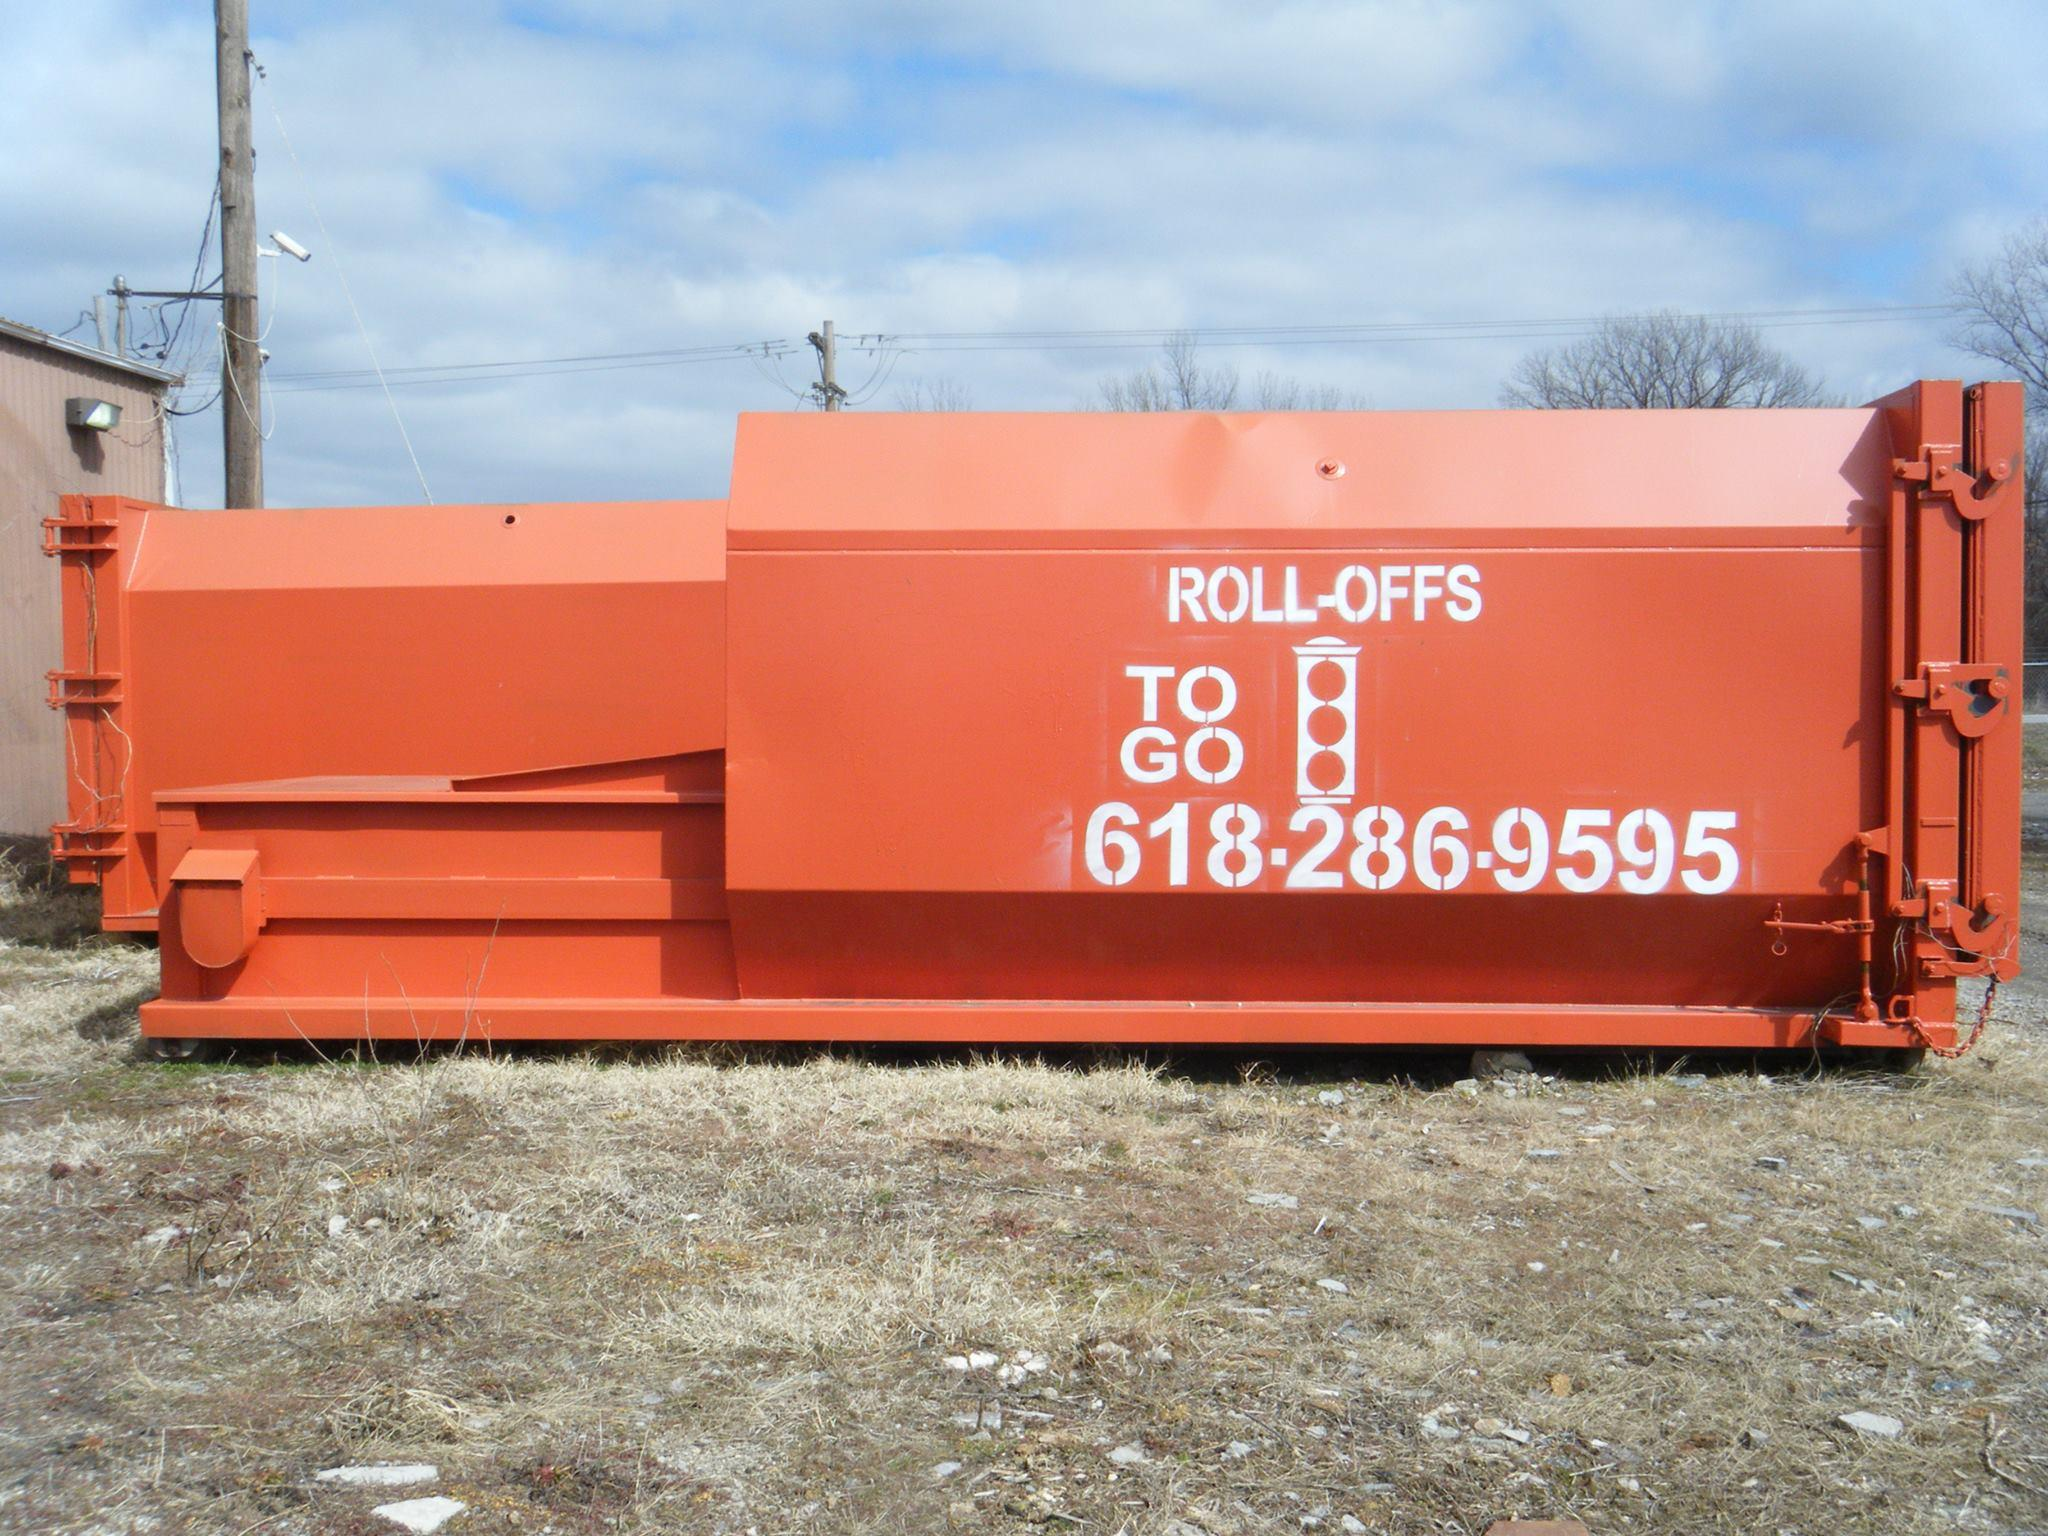 Roll Offs To Go Dumpster Service image 1